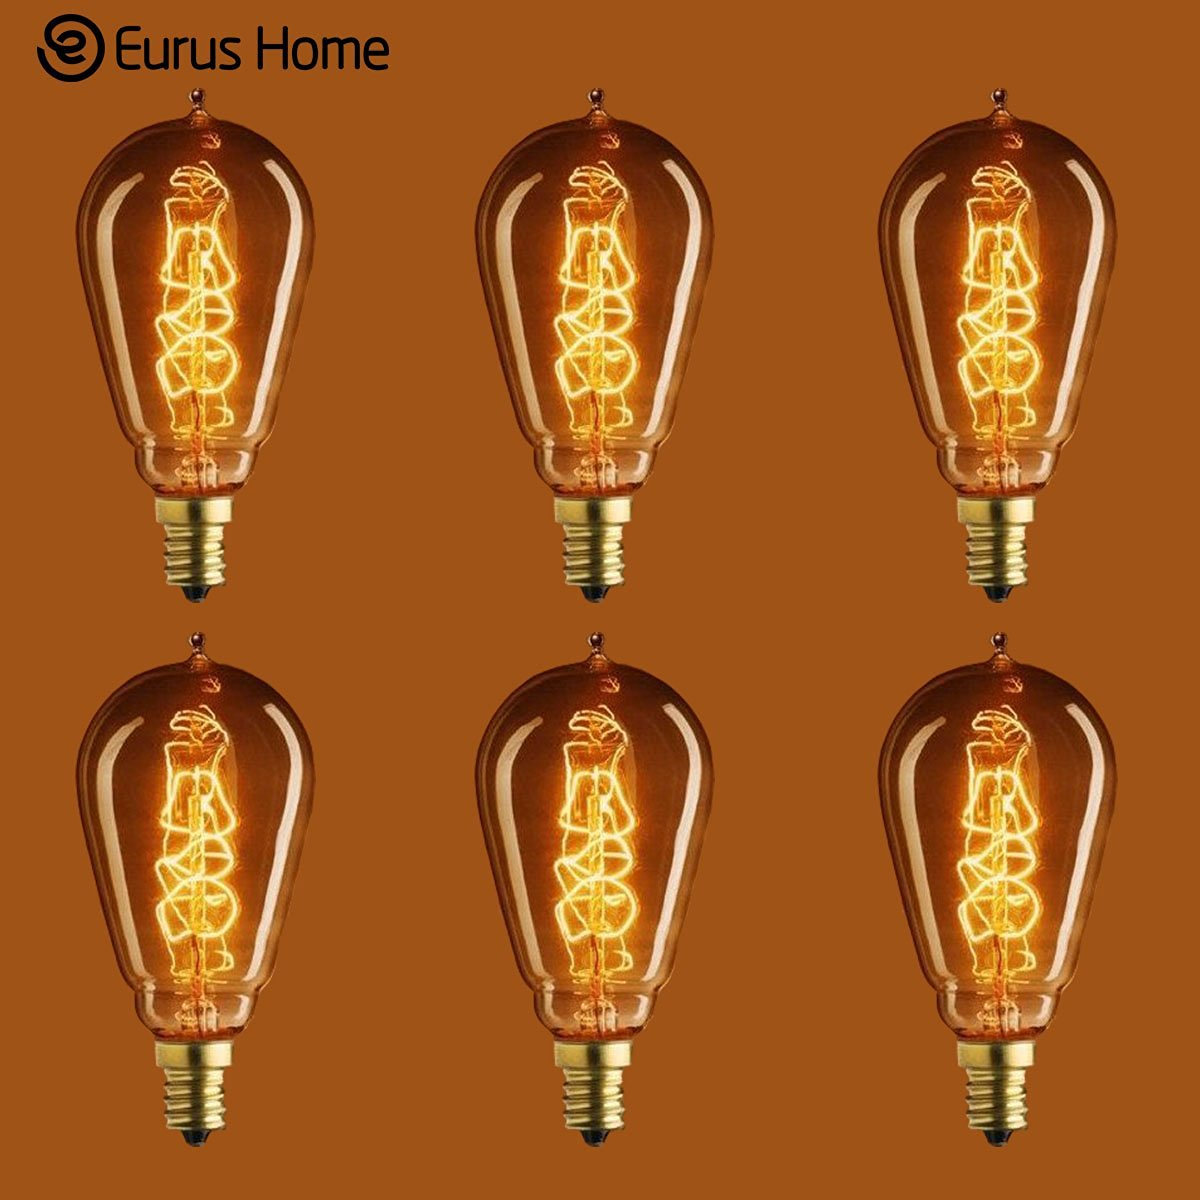 Eurus Home 25 Watt - Vintage Antique Light Bulb - ST15 Edison Style - Candelabra Base - Hand-Wound Spiral Tungsten Filament - Multiple Supports - Clear (6 Pack)